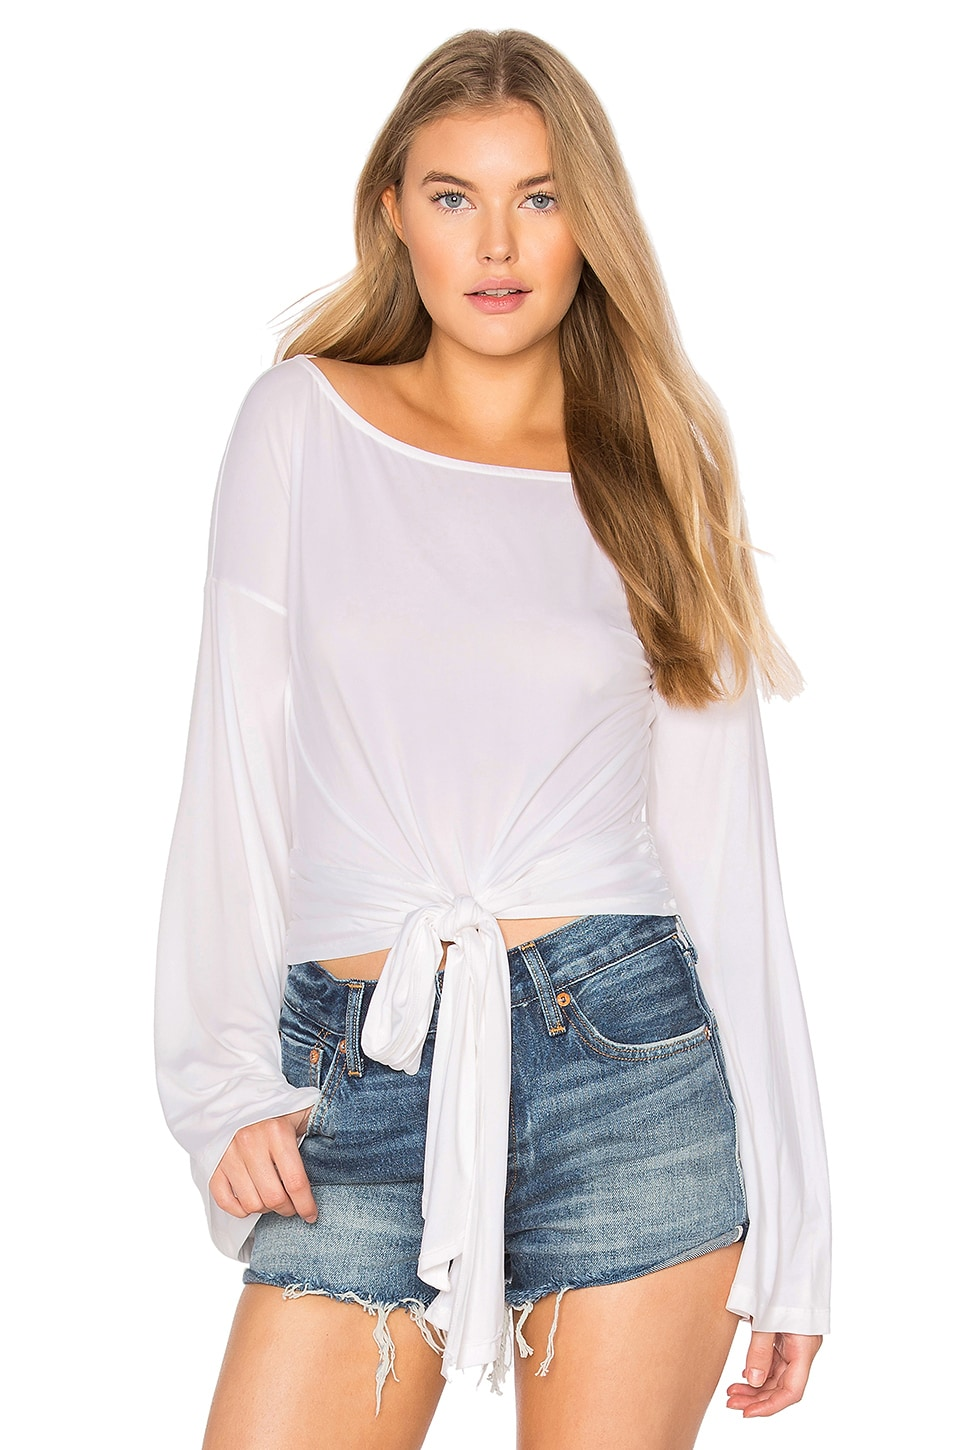 YFB CLOTHING Largo Top in White